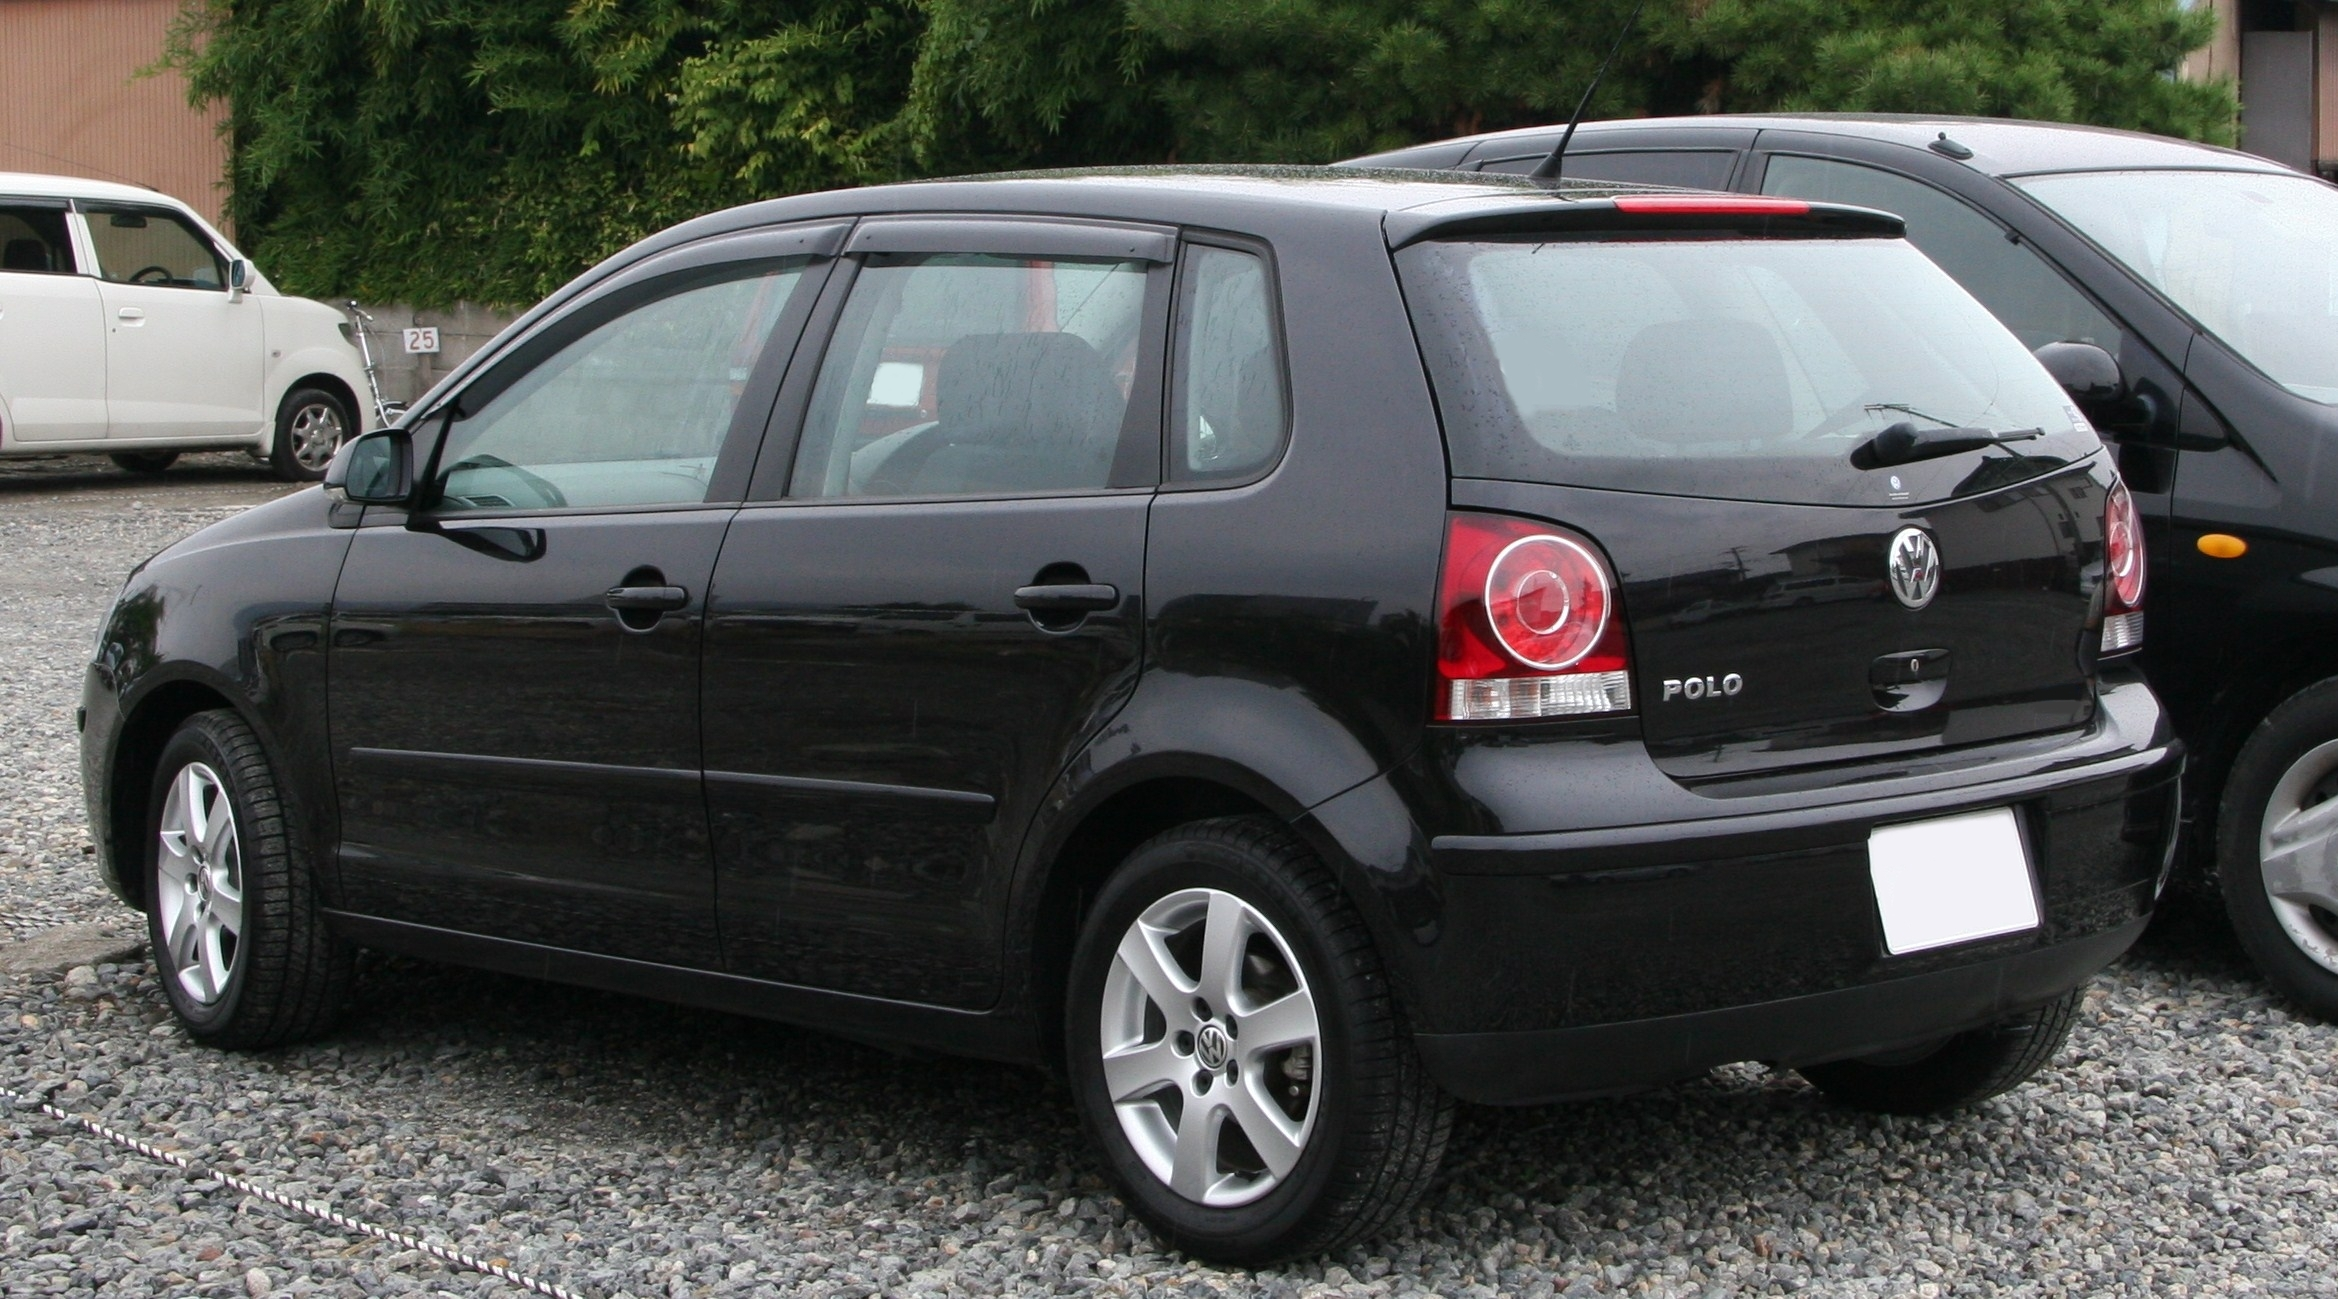 What Does Volkswagen Own >> File:2005-2009 Volkswagen Polo rear.jpg - Wikimedia Commons